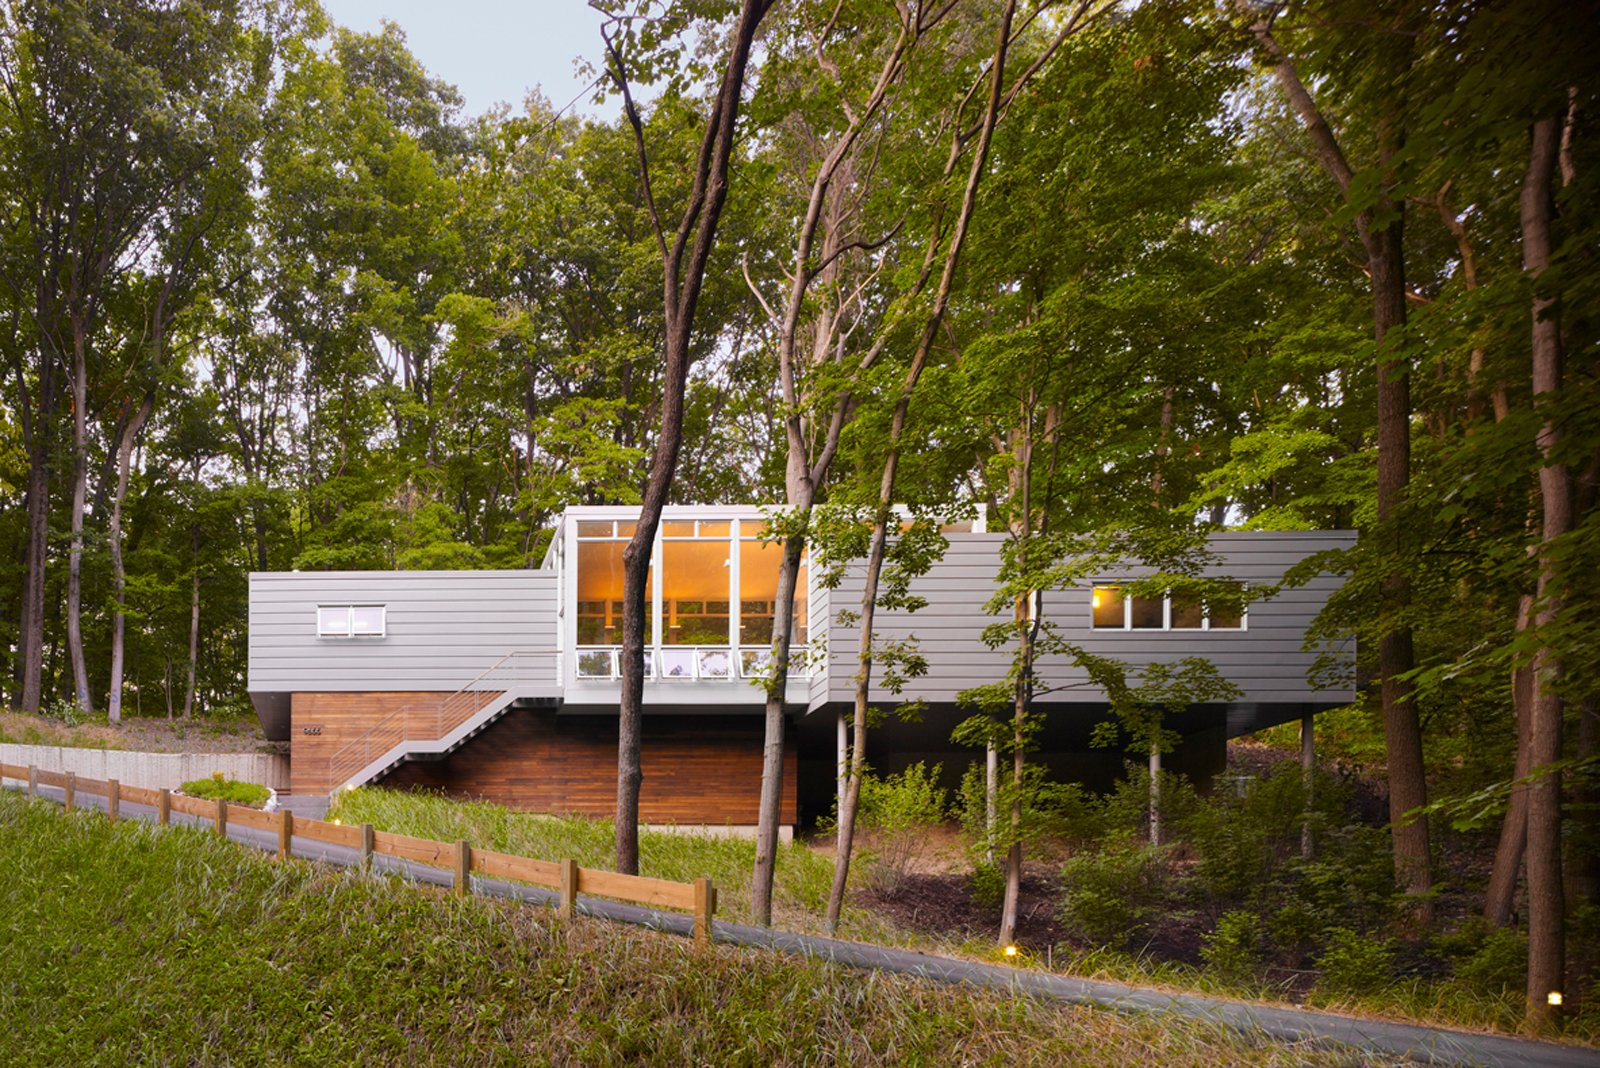 """Built on a challenging hillside site and tucked behind a thicket of trees, the Bridgman, Michigan, house designed by Scott Rappe provides a modern weekend retreat for a Chicago couple. """"One of my first responsibilities was getting the owners up to their house and essentially on one level. Because of the pie-shaped property, we needed to push the building up the hill to provide square footage for the program. By keeping the building perpendicular to the slope, using piloti on one side and a retaining wall on the dune side, we were able to insert foundations with minimal disturbance,"""" says Rappe."""